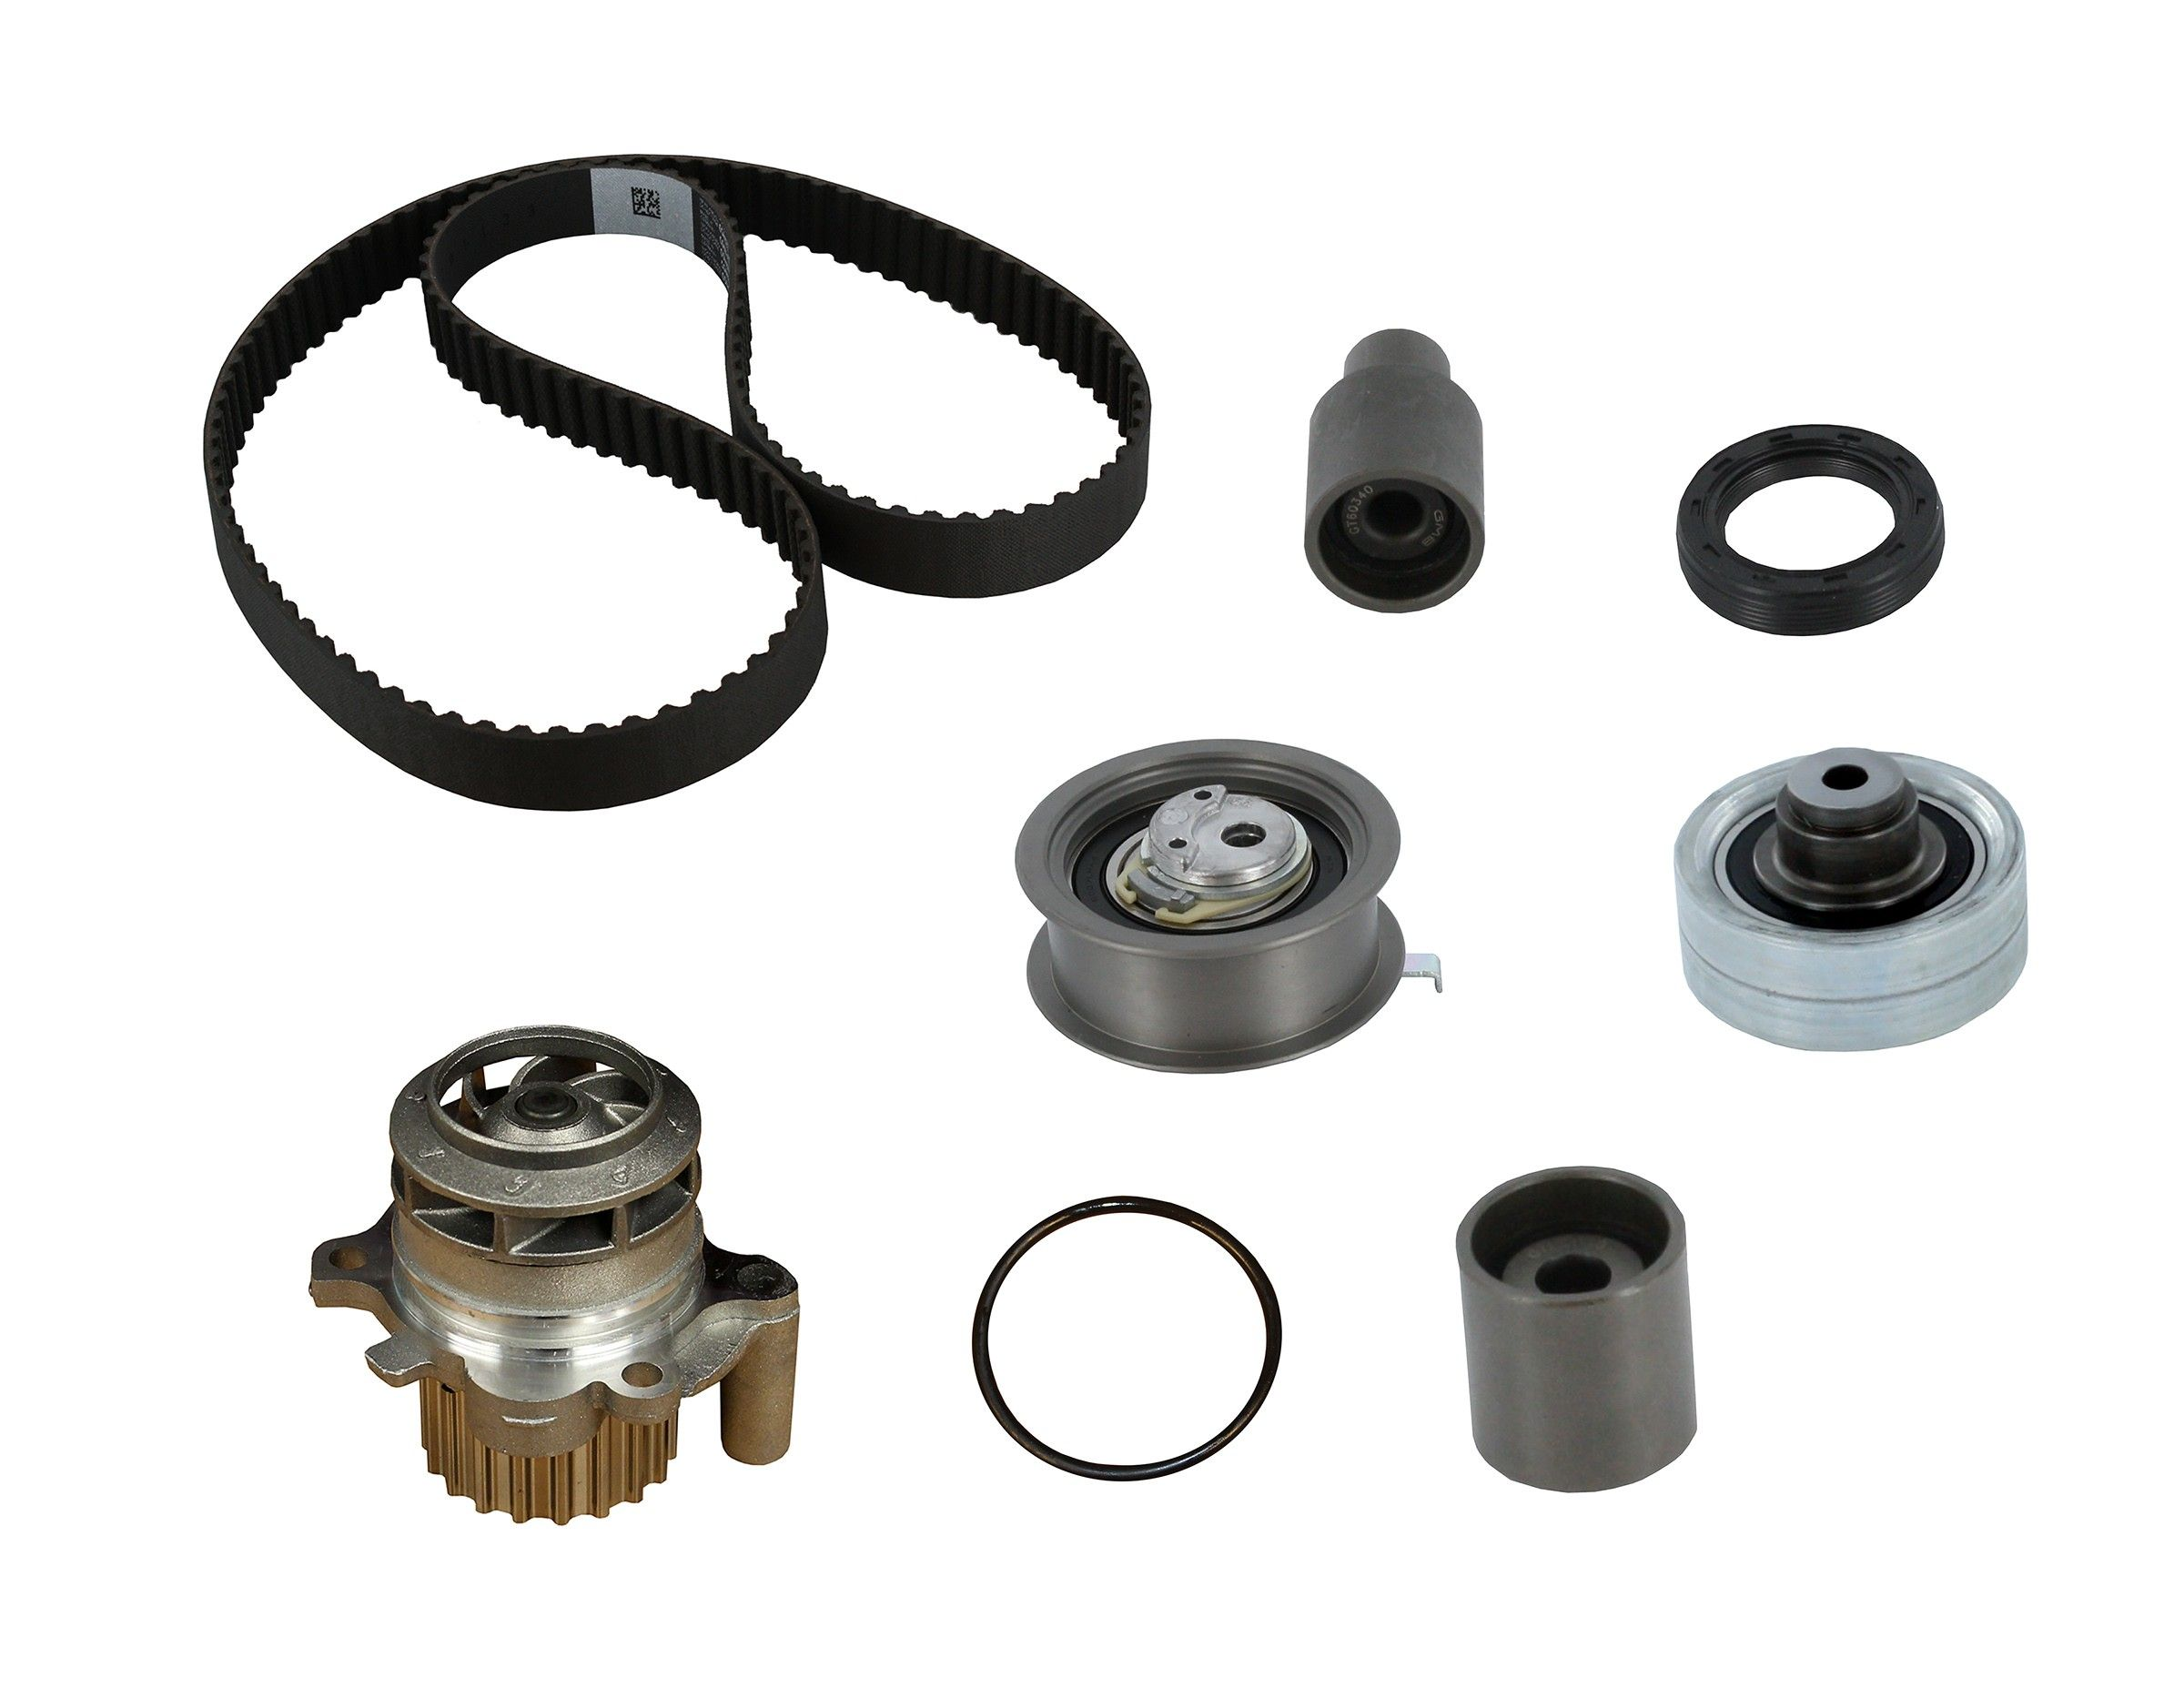 Volkswagen Jetta Engine Timing Belt Kit With Water Pump Replacement Dayco Idler 2001 4 Cyl 19l Crp Pp321lk1 Mi Pro Series Plus Contitech From Vin 9m1075841